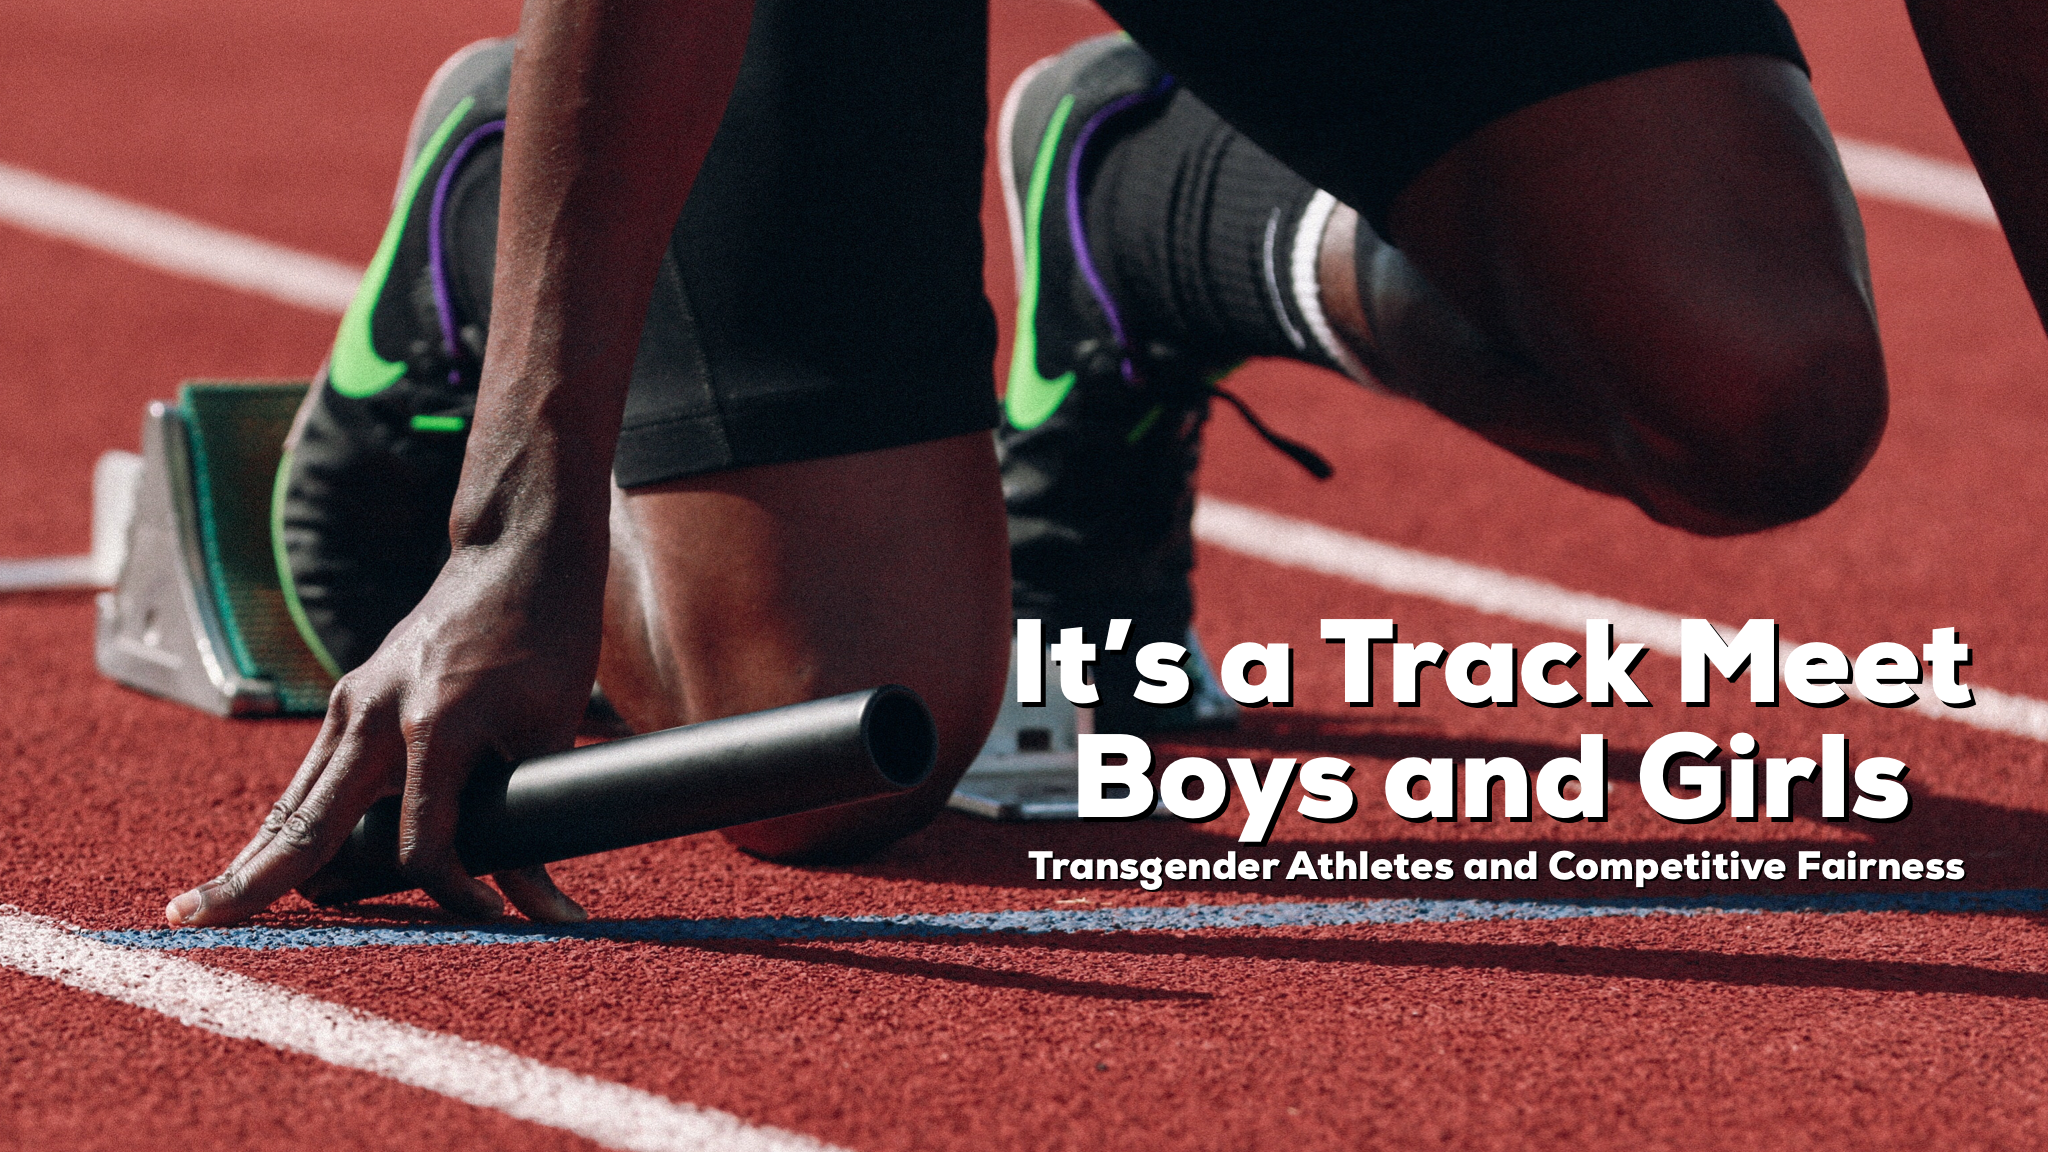 Reid and Jesse discuss biological males and females competing against one another in sanctioned athletic events when one identifies as transgender.